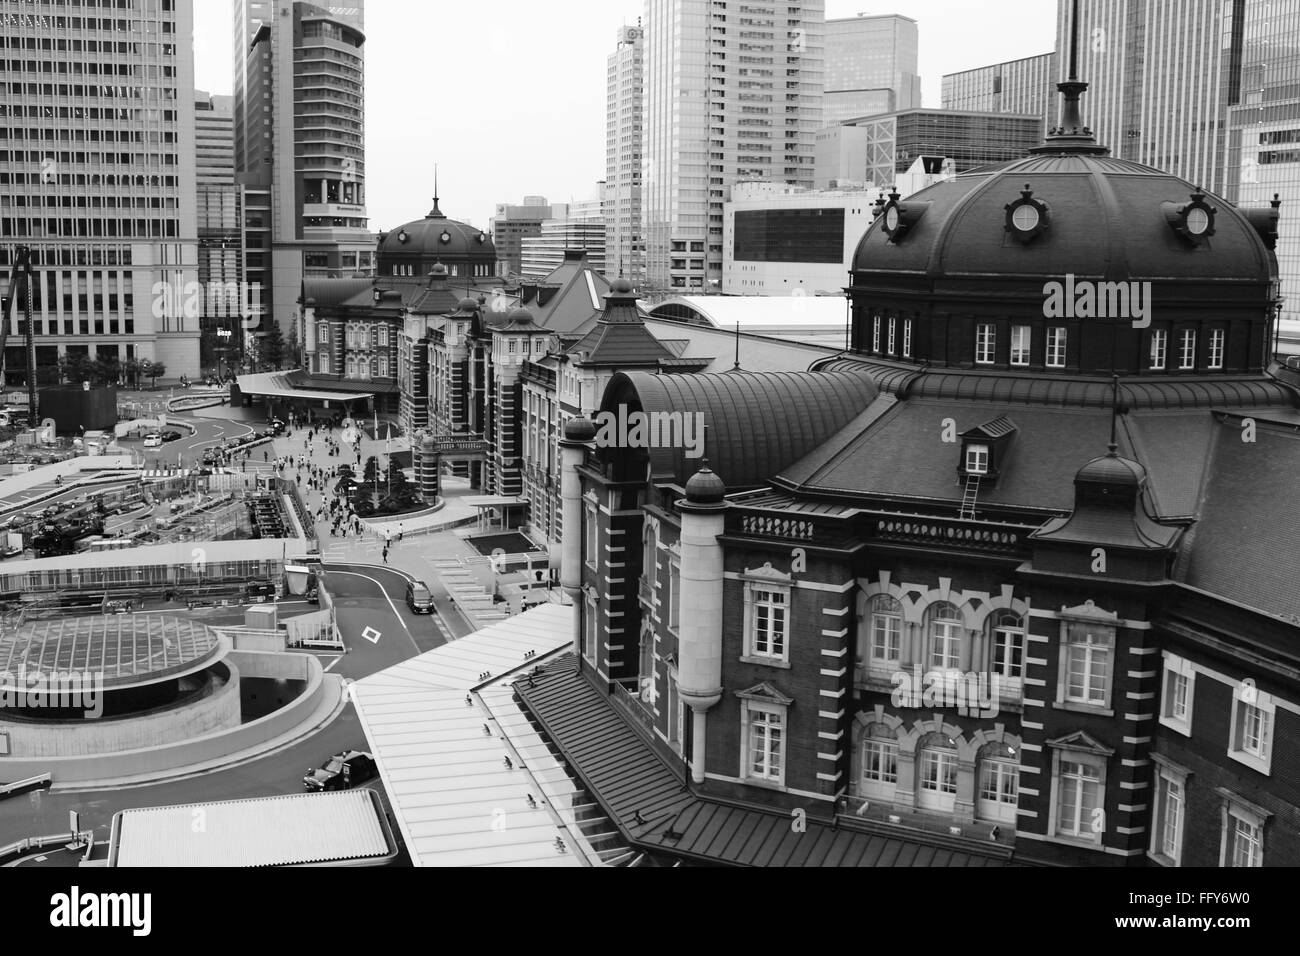 Tokyo Station Amidst Buildings In City - Stock Image